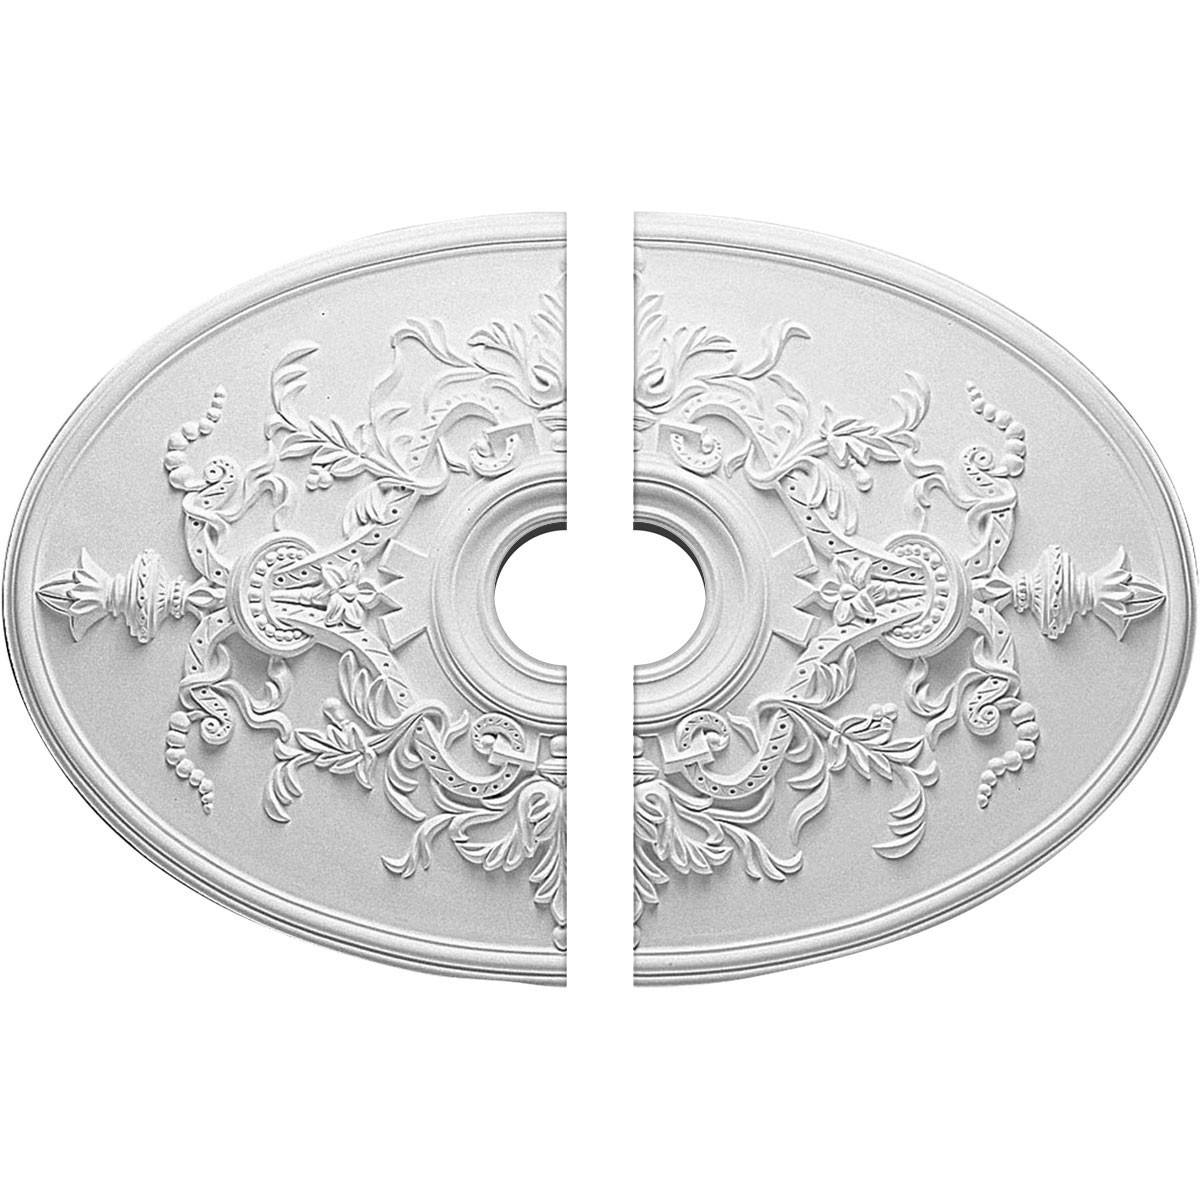 """EM-CM21X30AL2 - 21 1/4""""W x 30 3/4""""H x 3 7/8""""ID x 1 5/8""""P Alexa Ceiling Medallion, Two Piece (Fits Canopies up to 5 5/8"""")"""